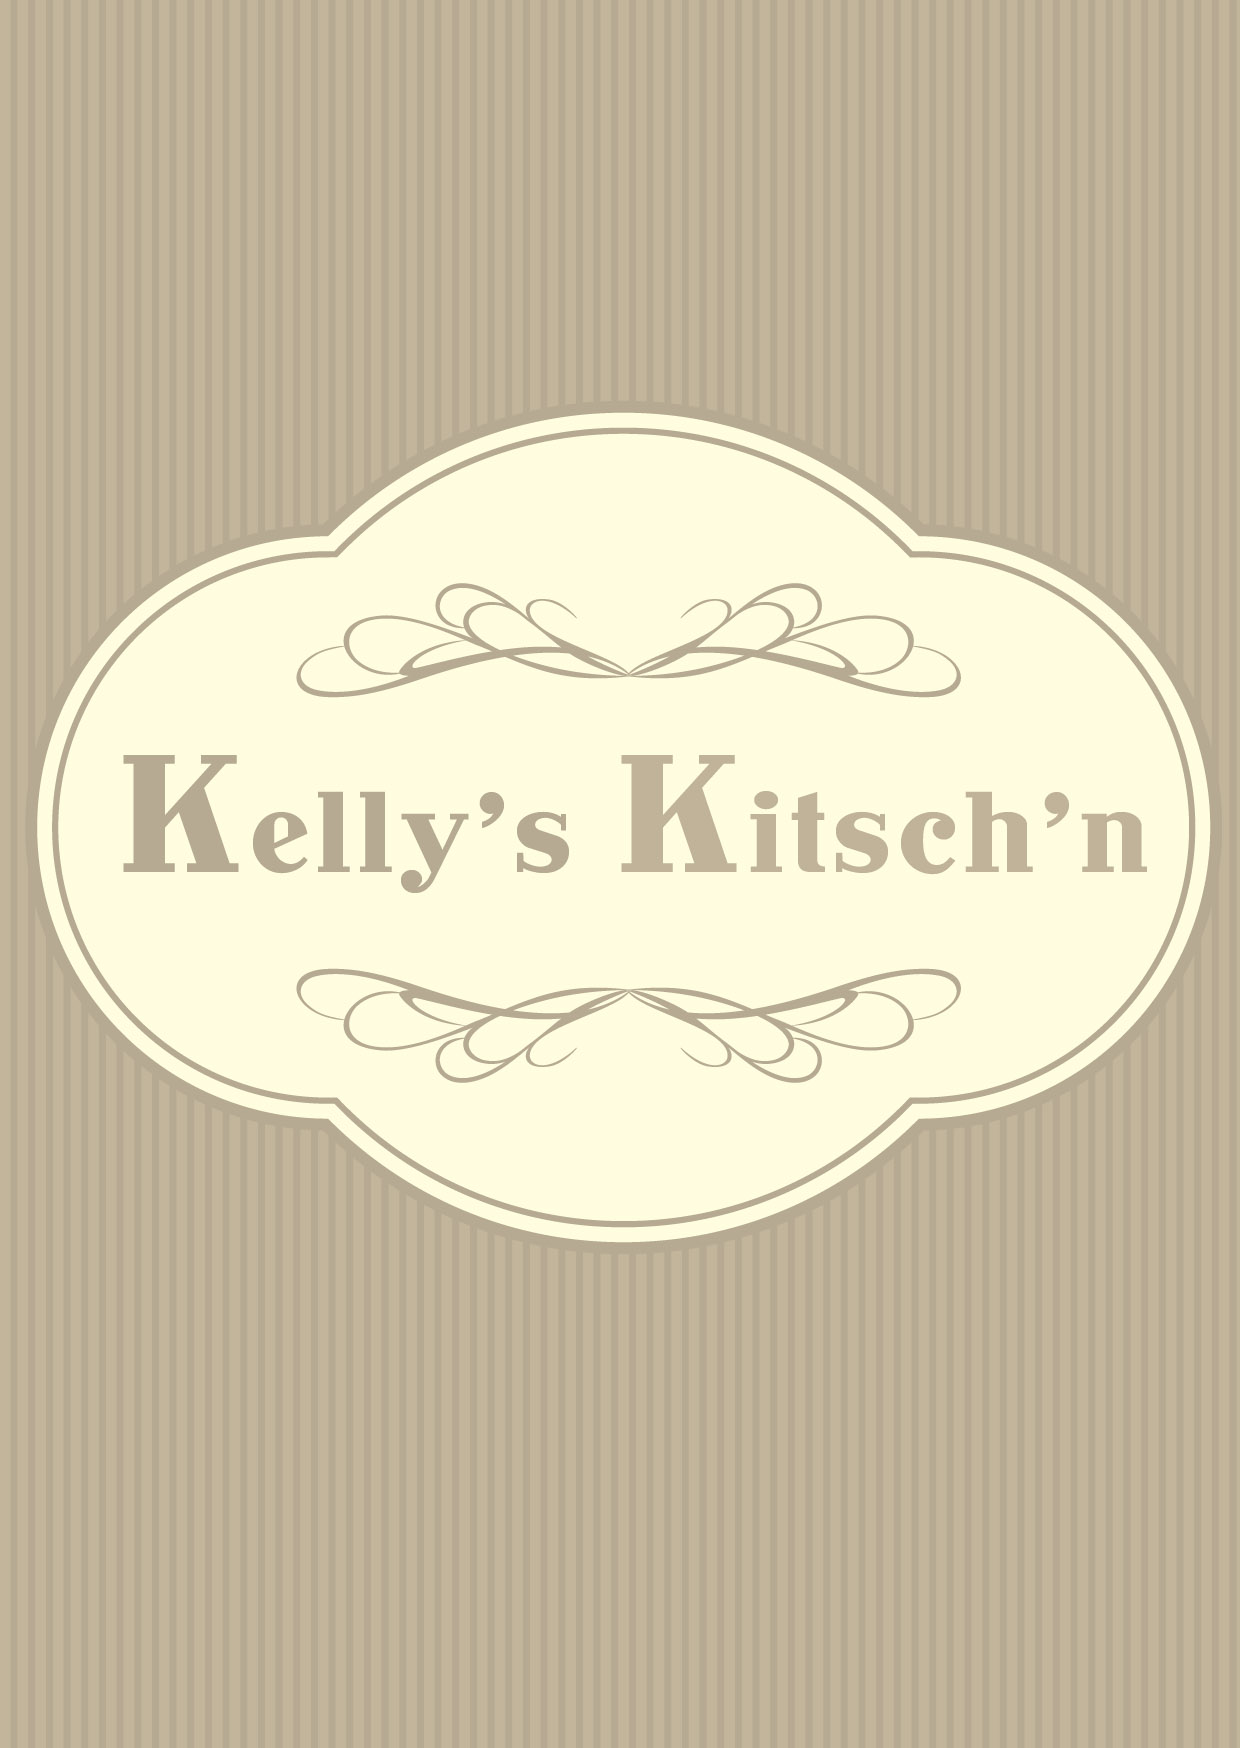 Logo Design by Private User - Entry No. 32 in the Logo Design Contest Unique Logo Design Wanted for Kelly's Kitsch'n.